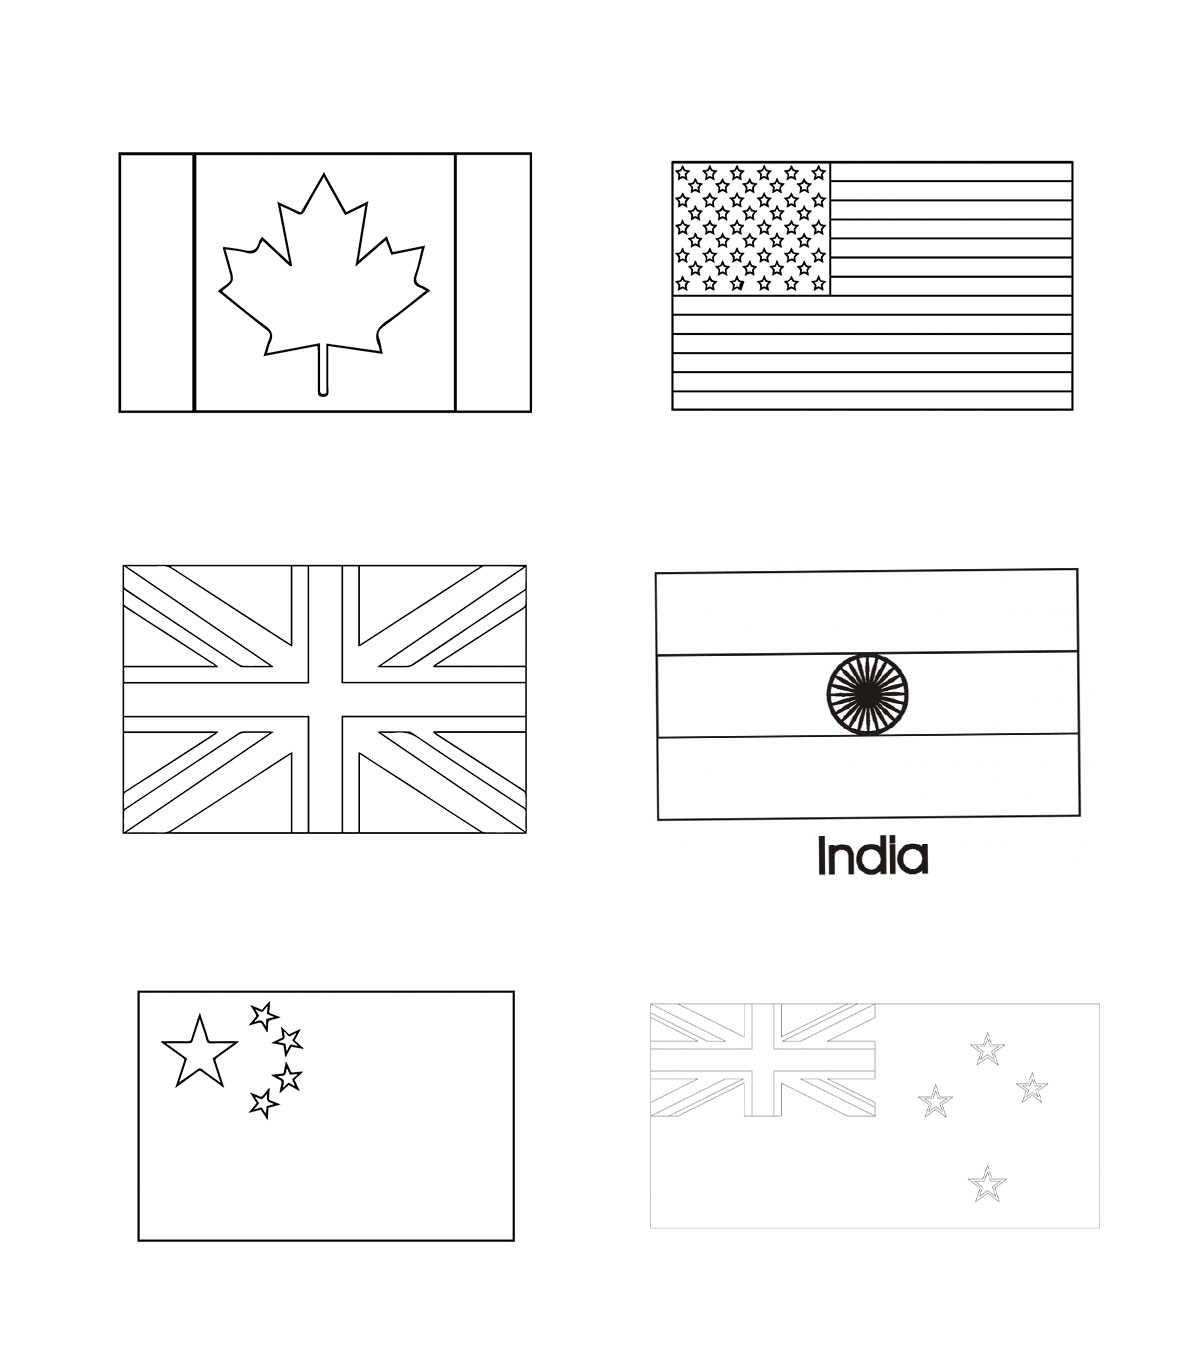 Countries Coloring Pages